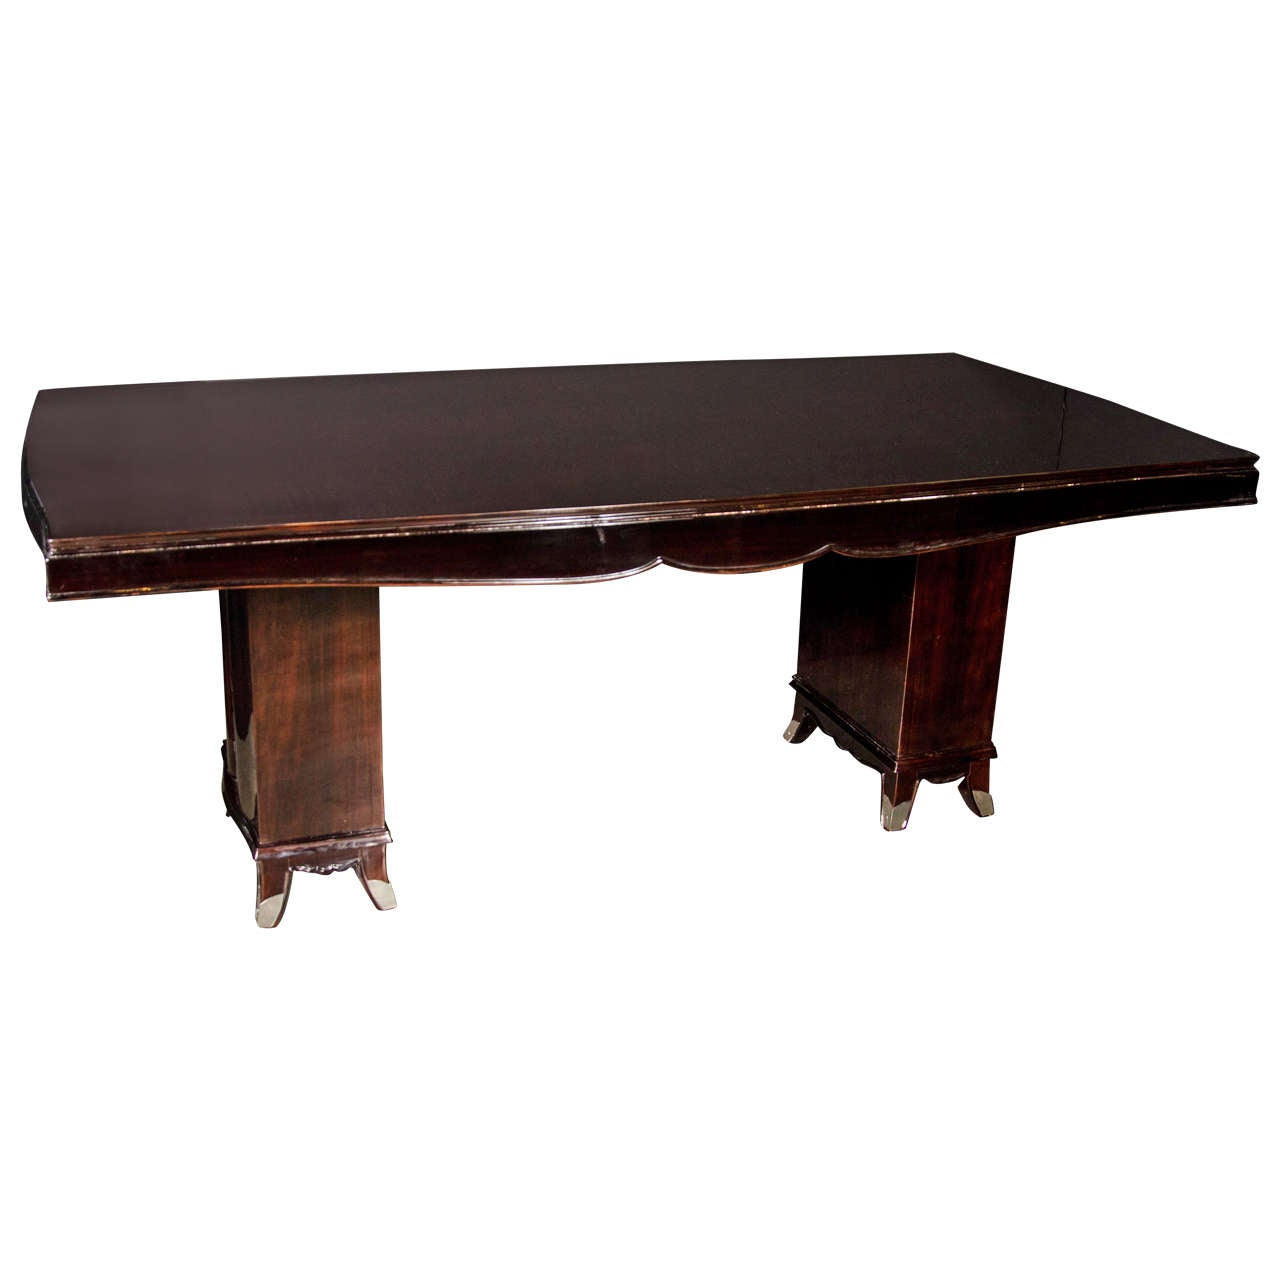 Elegant Art Deco Dining Table Attributed to Adnet